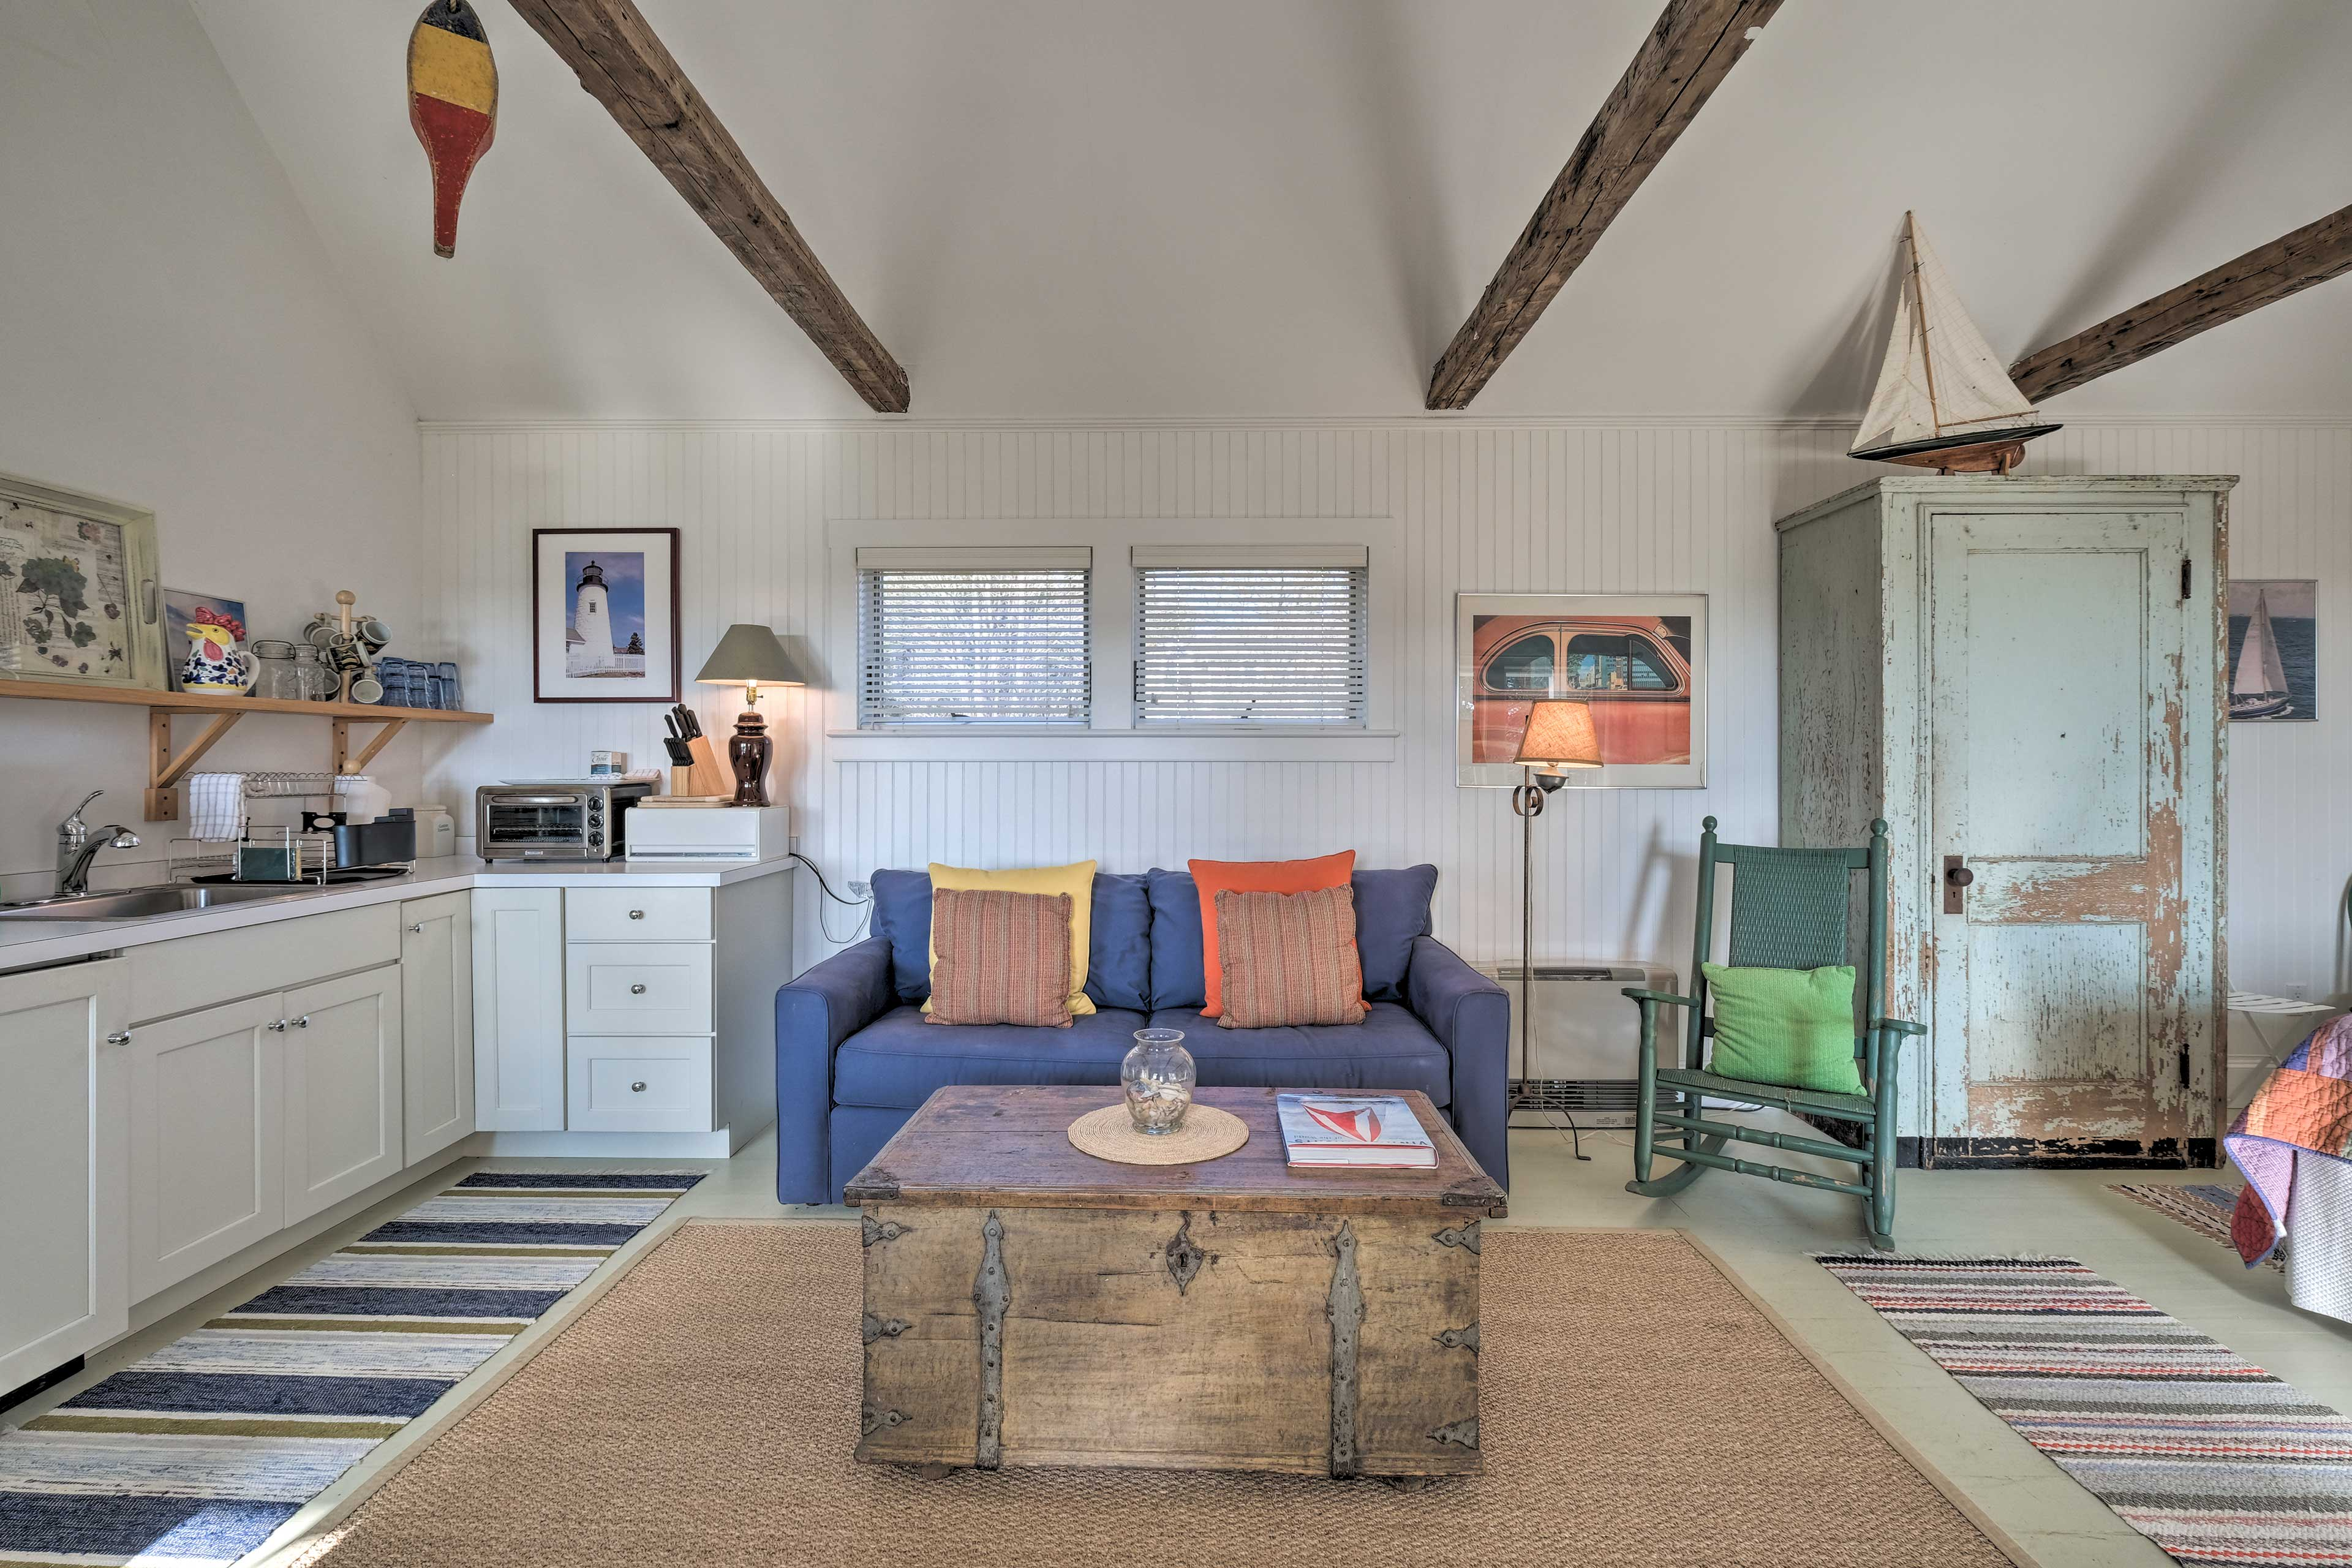 Exposed wood beams and a clean white interior set a relaxing atmosphere.